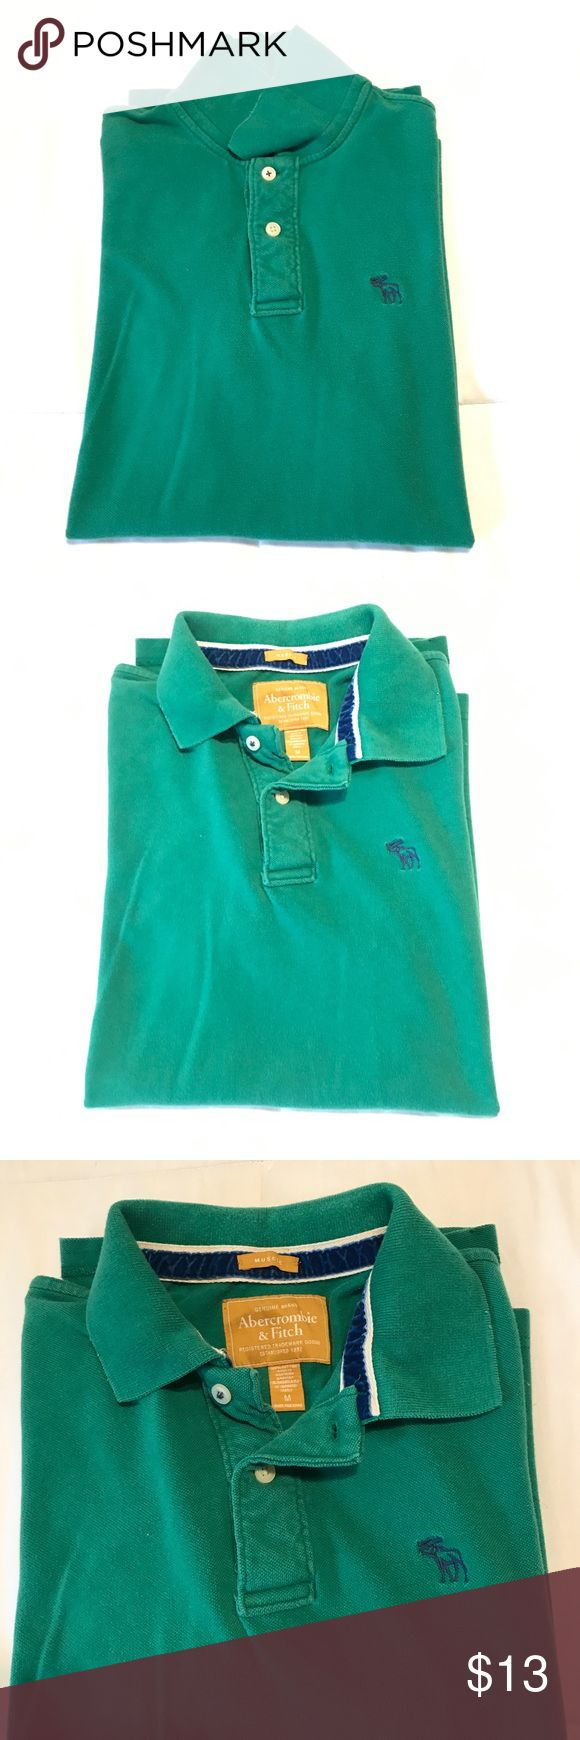 Abercrombie and Fitch men's muscle polo shirt. Abercrombie and Fitch men's muscle polo shirt. Used. Size M. Need to be wash before wear! Abercrombie & Fitch Shirts Polos